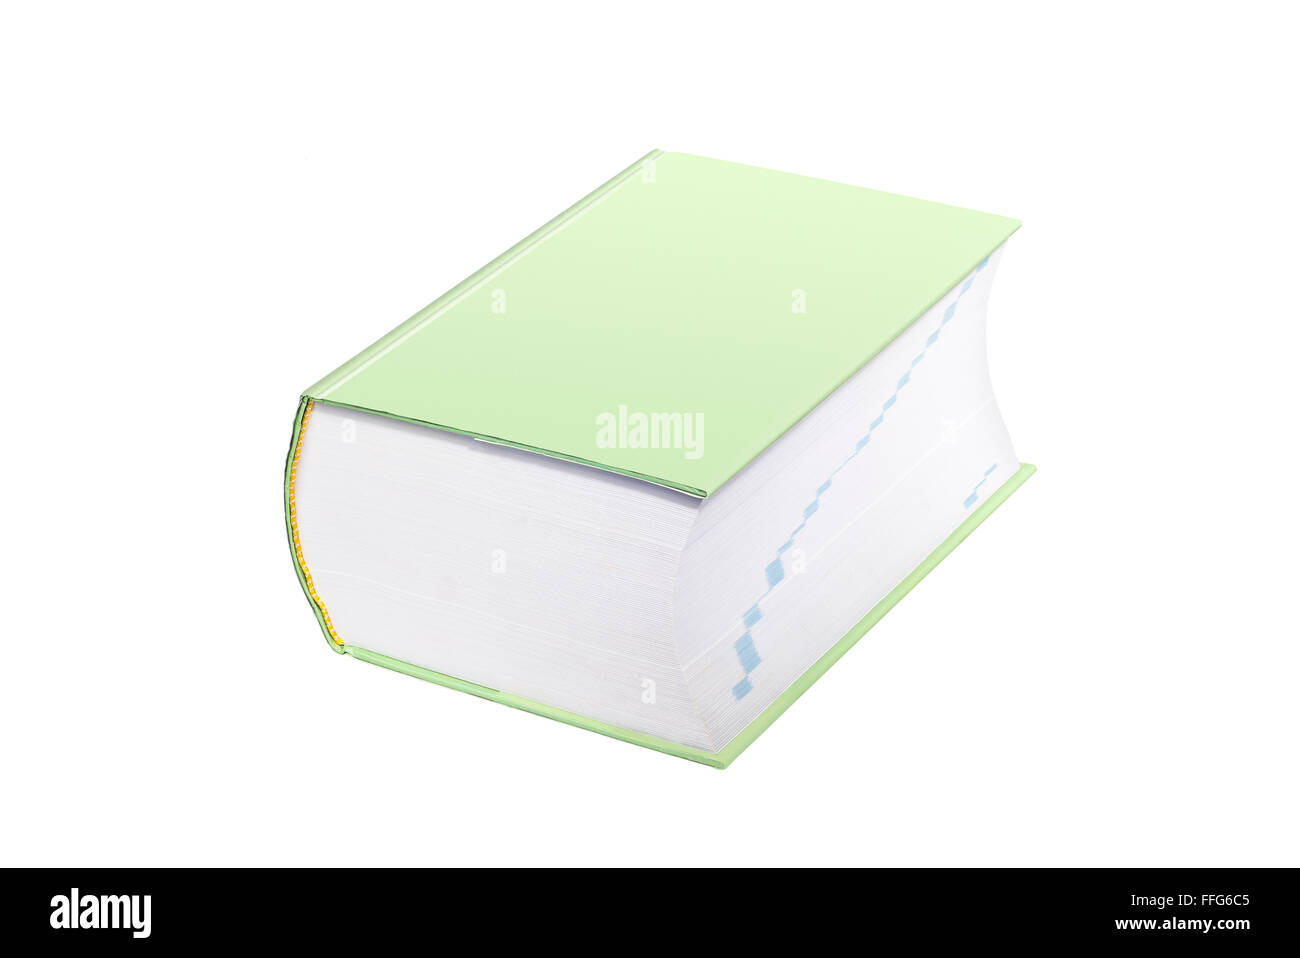 Large Green Reference Type Book With Cover Blank for Copy Space - Stock Image